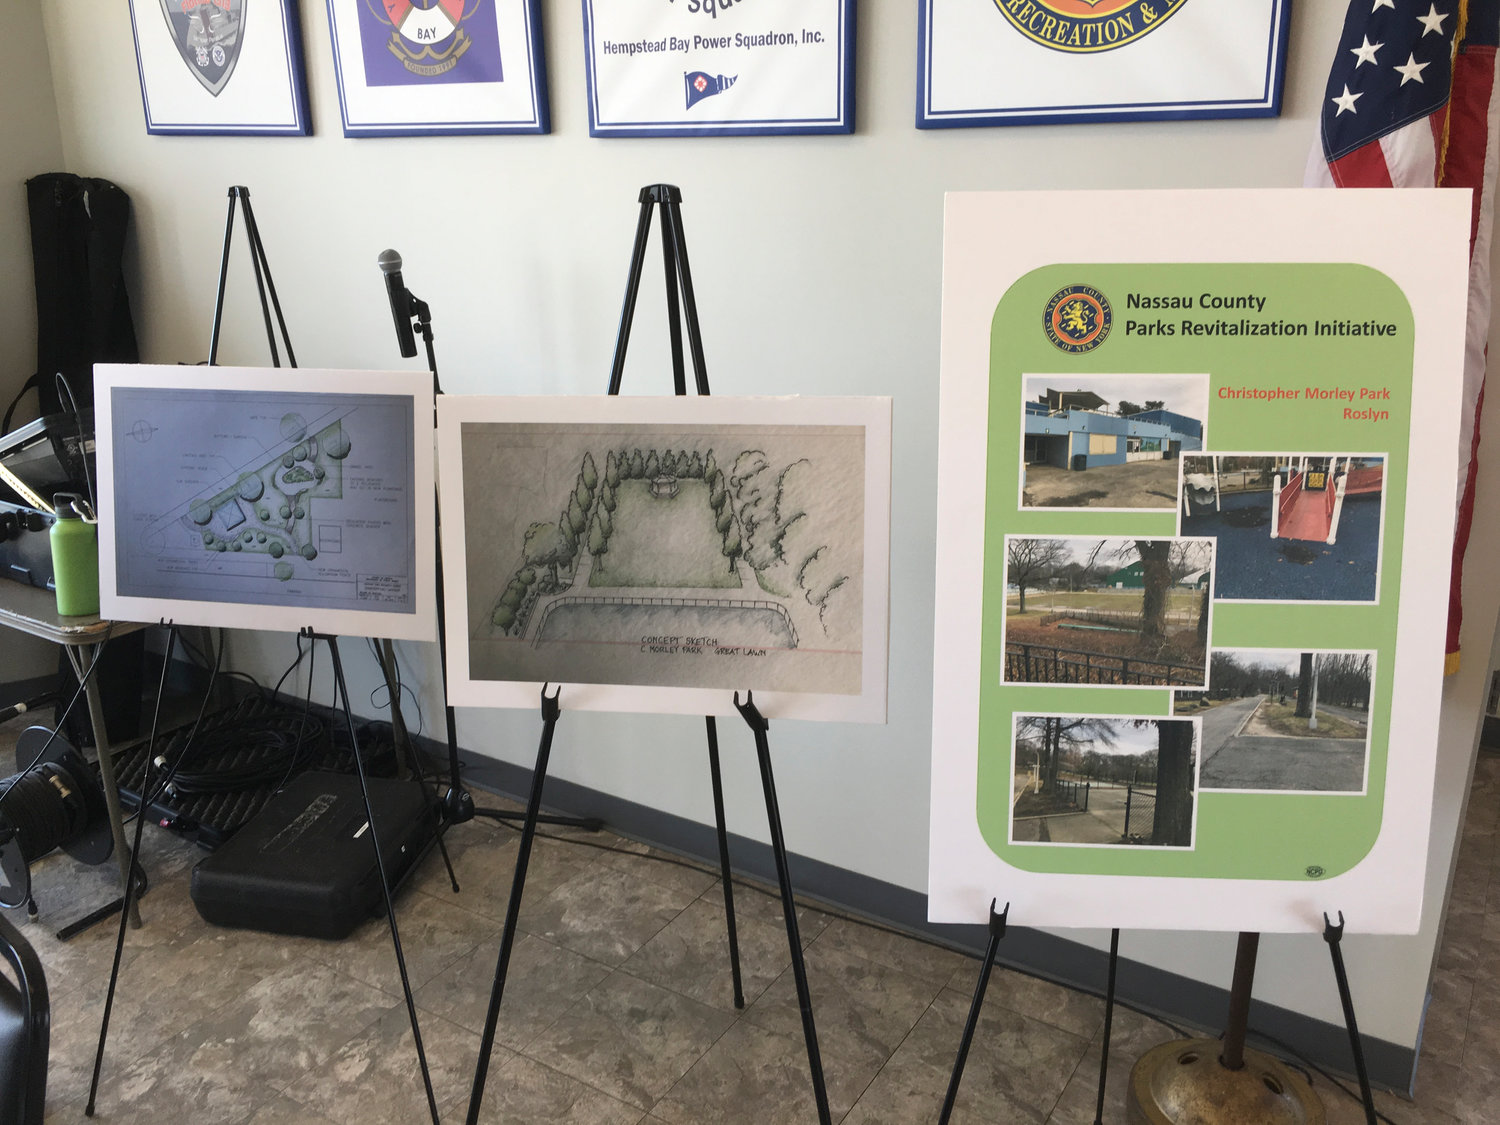 Posters depicting the Wantagh Park Butterfly Garden, left, and Christopher Morley Park Great Lawn conceptual revitalization plans, stood next to a poster of Christopher Morley Park pictures, right.